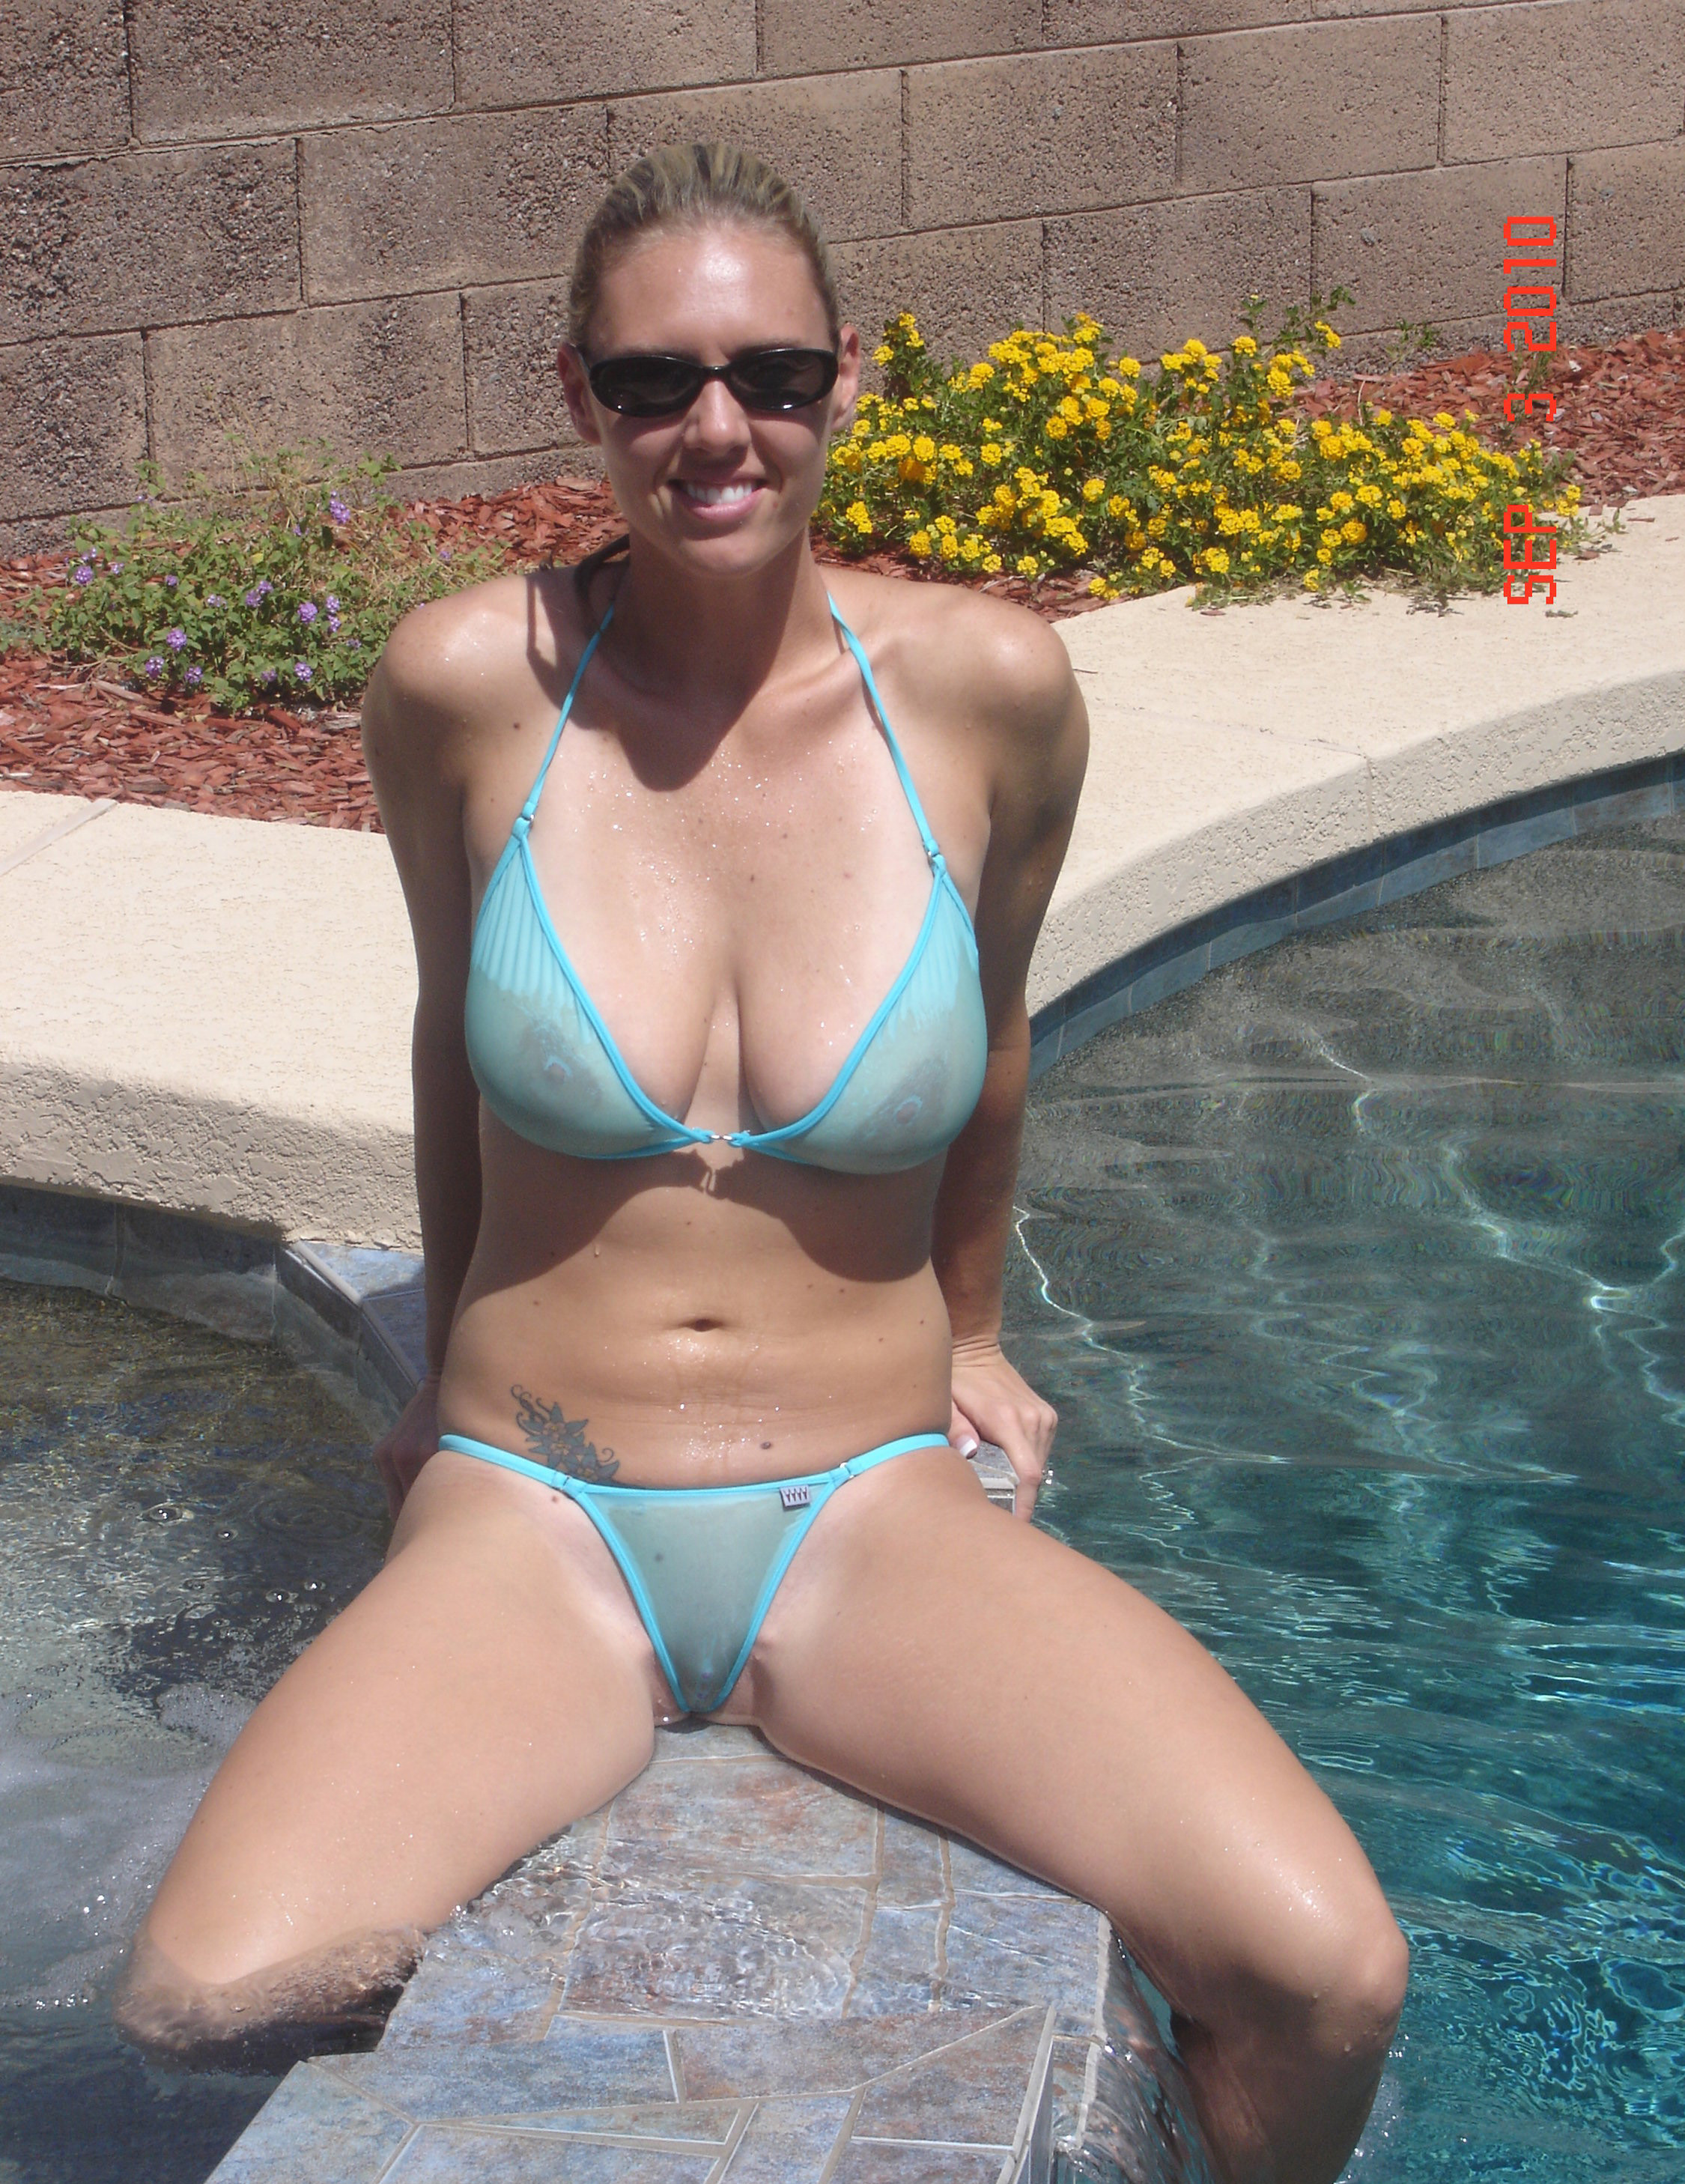 milf in see through bikini at a resort in public. [gallery]